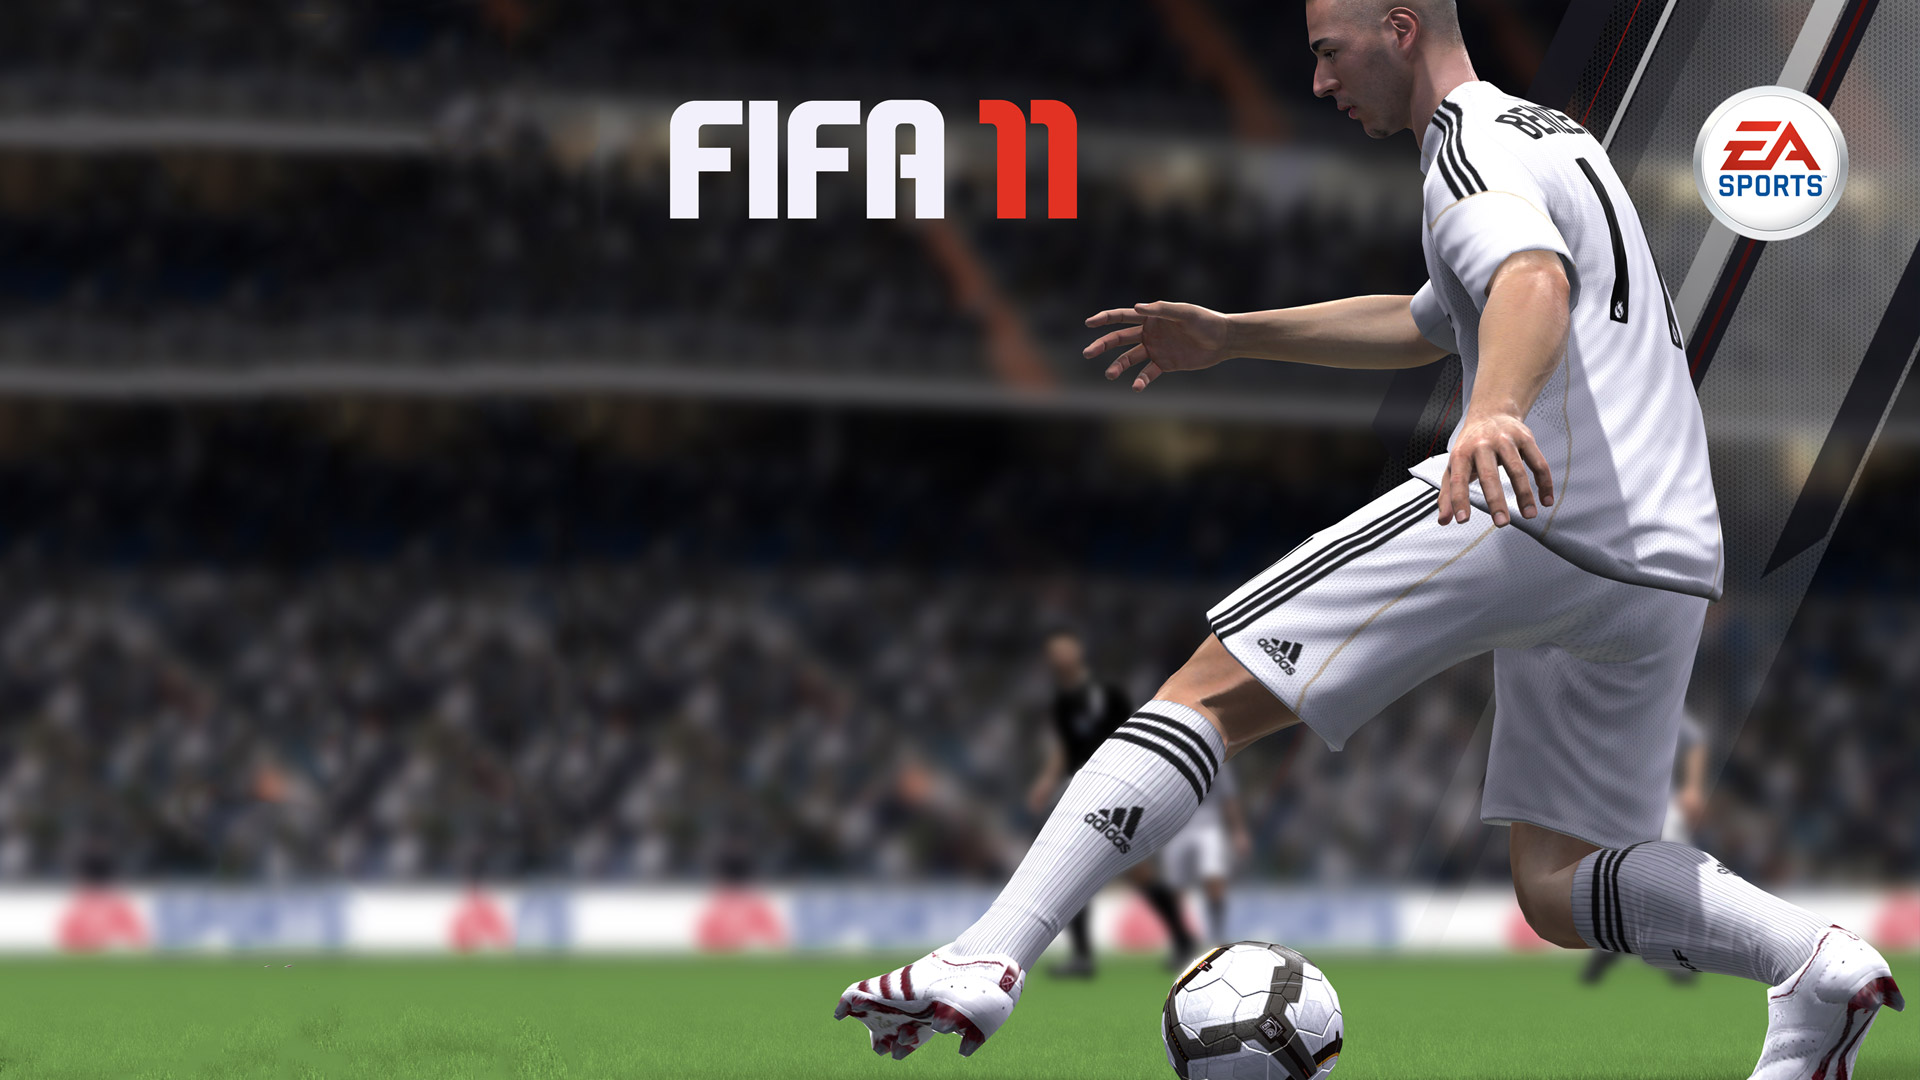 FIFA 11 Wallpaper in 1920x1080